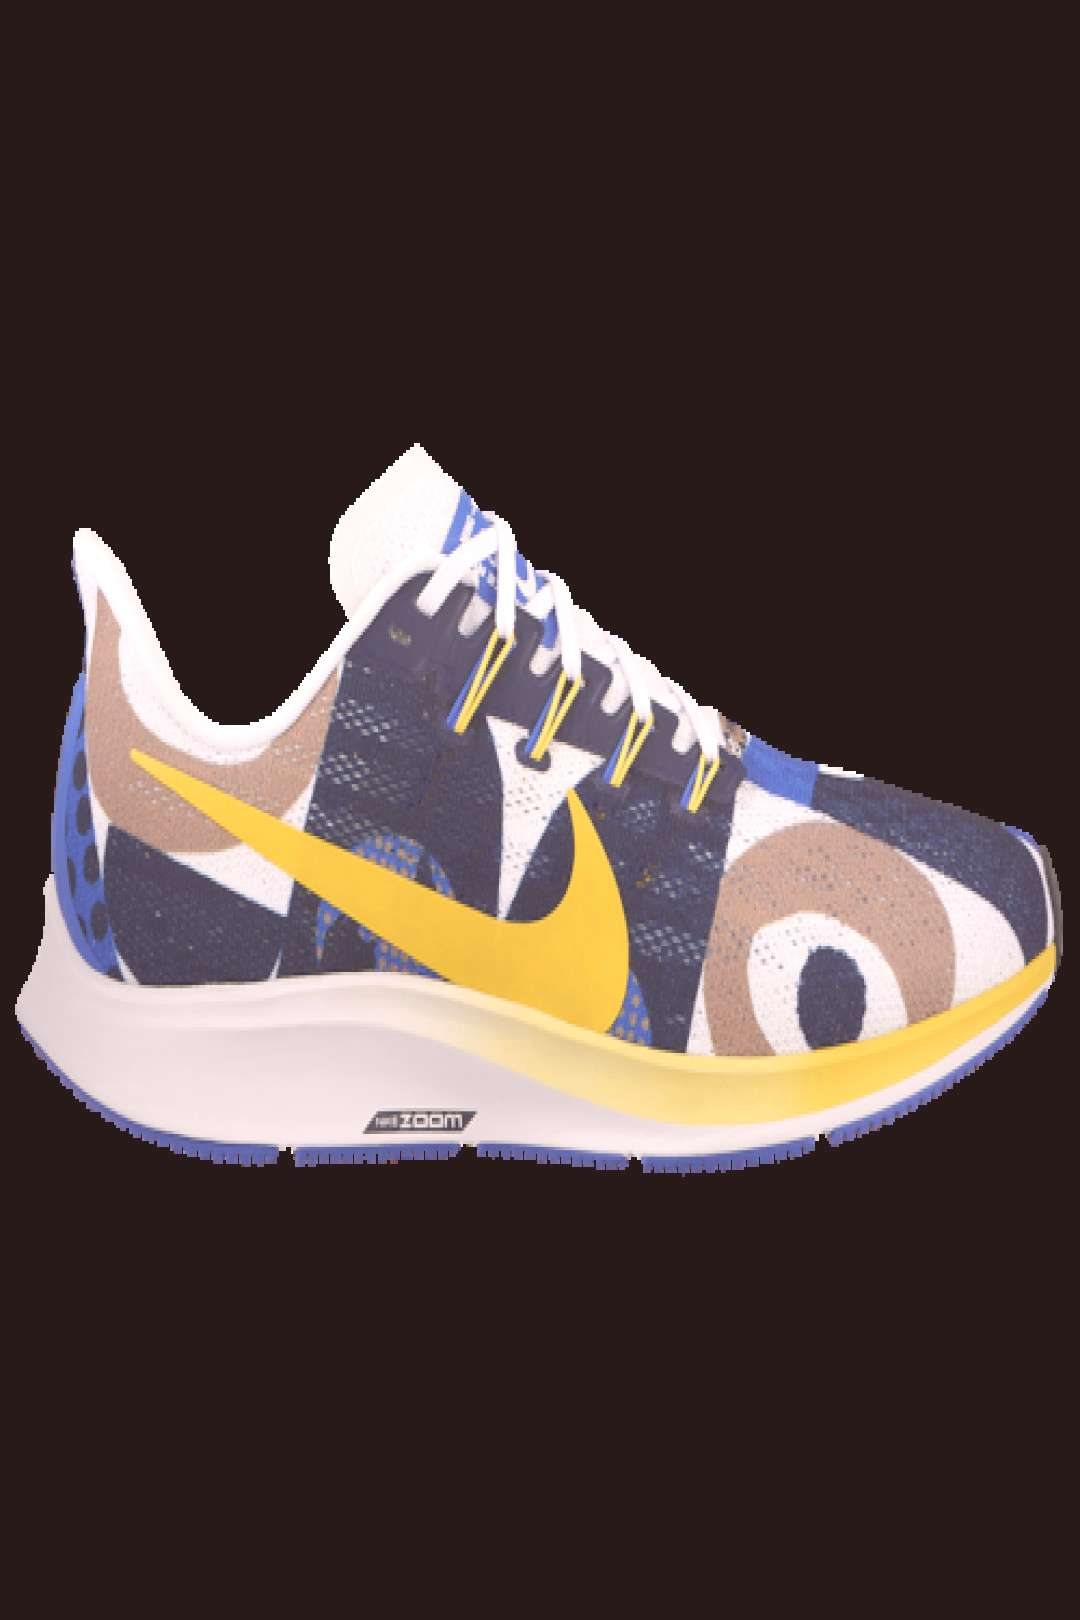 Nike Air Zoom Pegasus 36 Active Performance Running Shoes - Hyper Royal / Chrome Yellow White Obsid